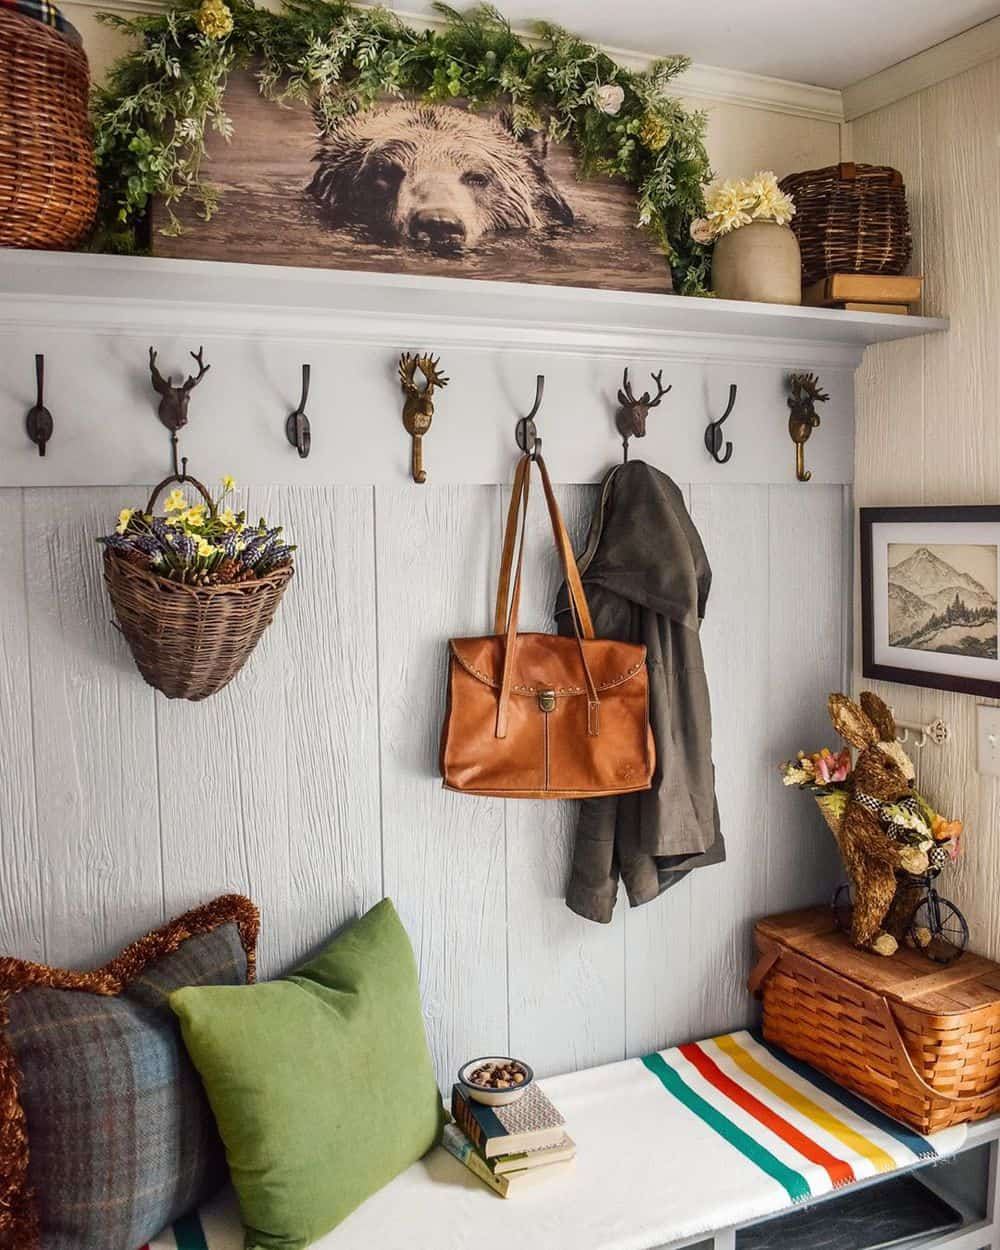 Worth Trying Mudroom Ideas for the House - Walls for Hats and Floors for Shoes